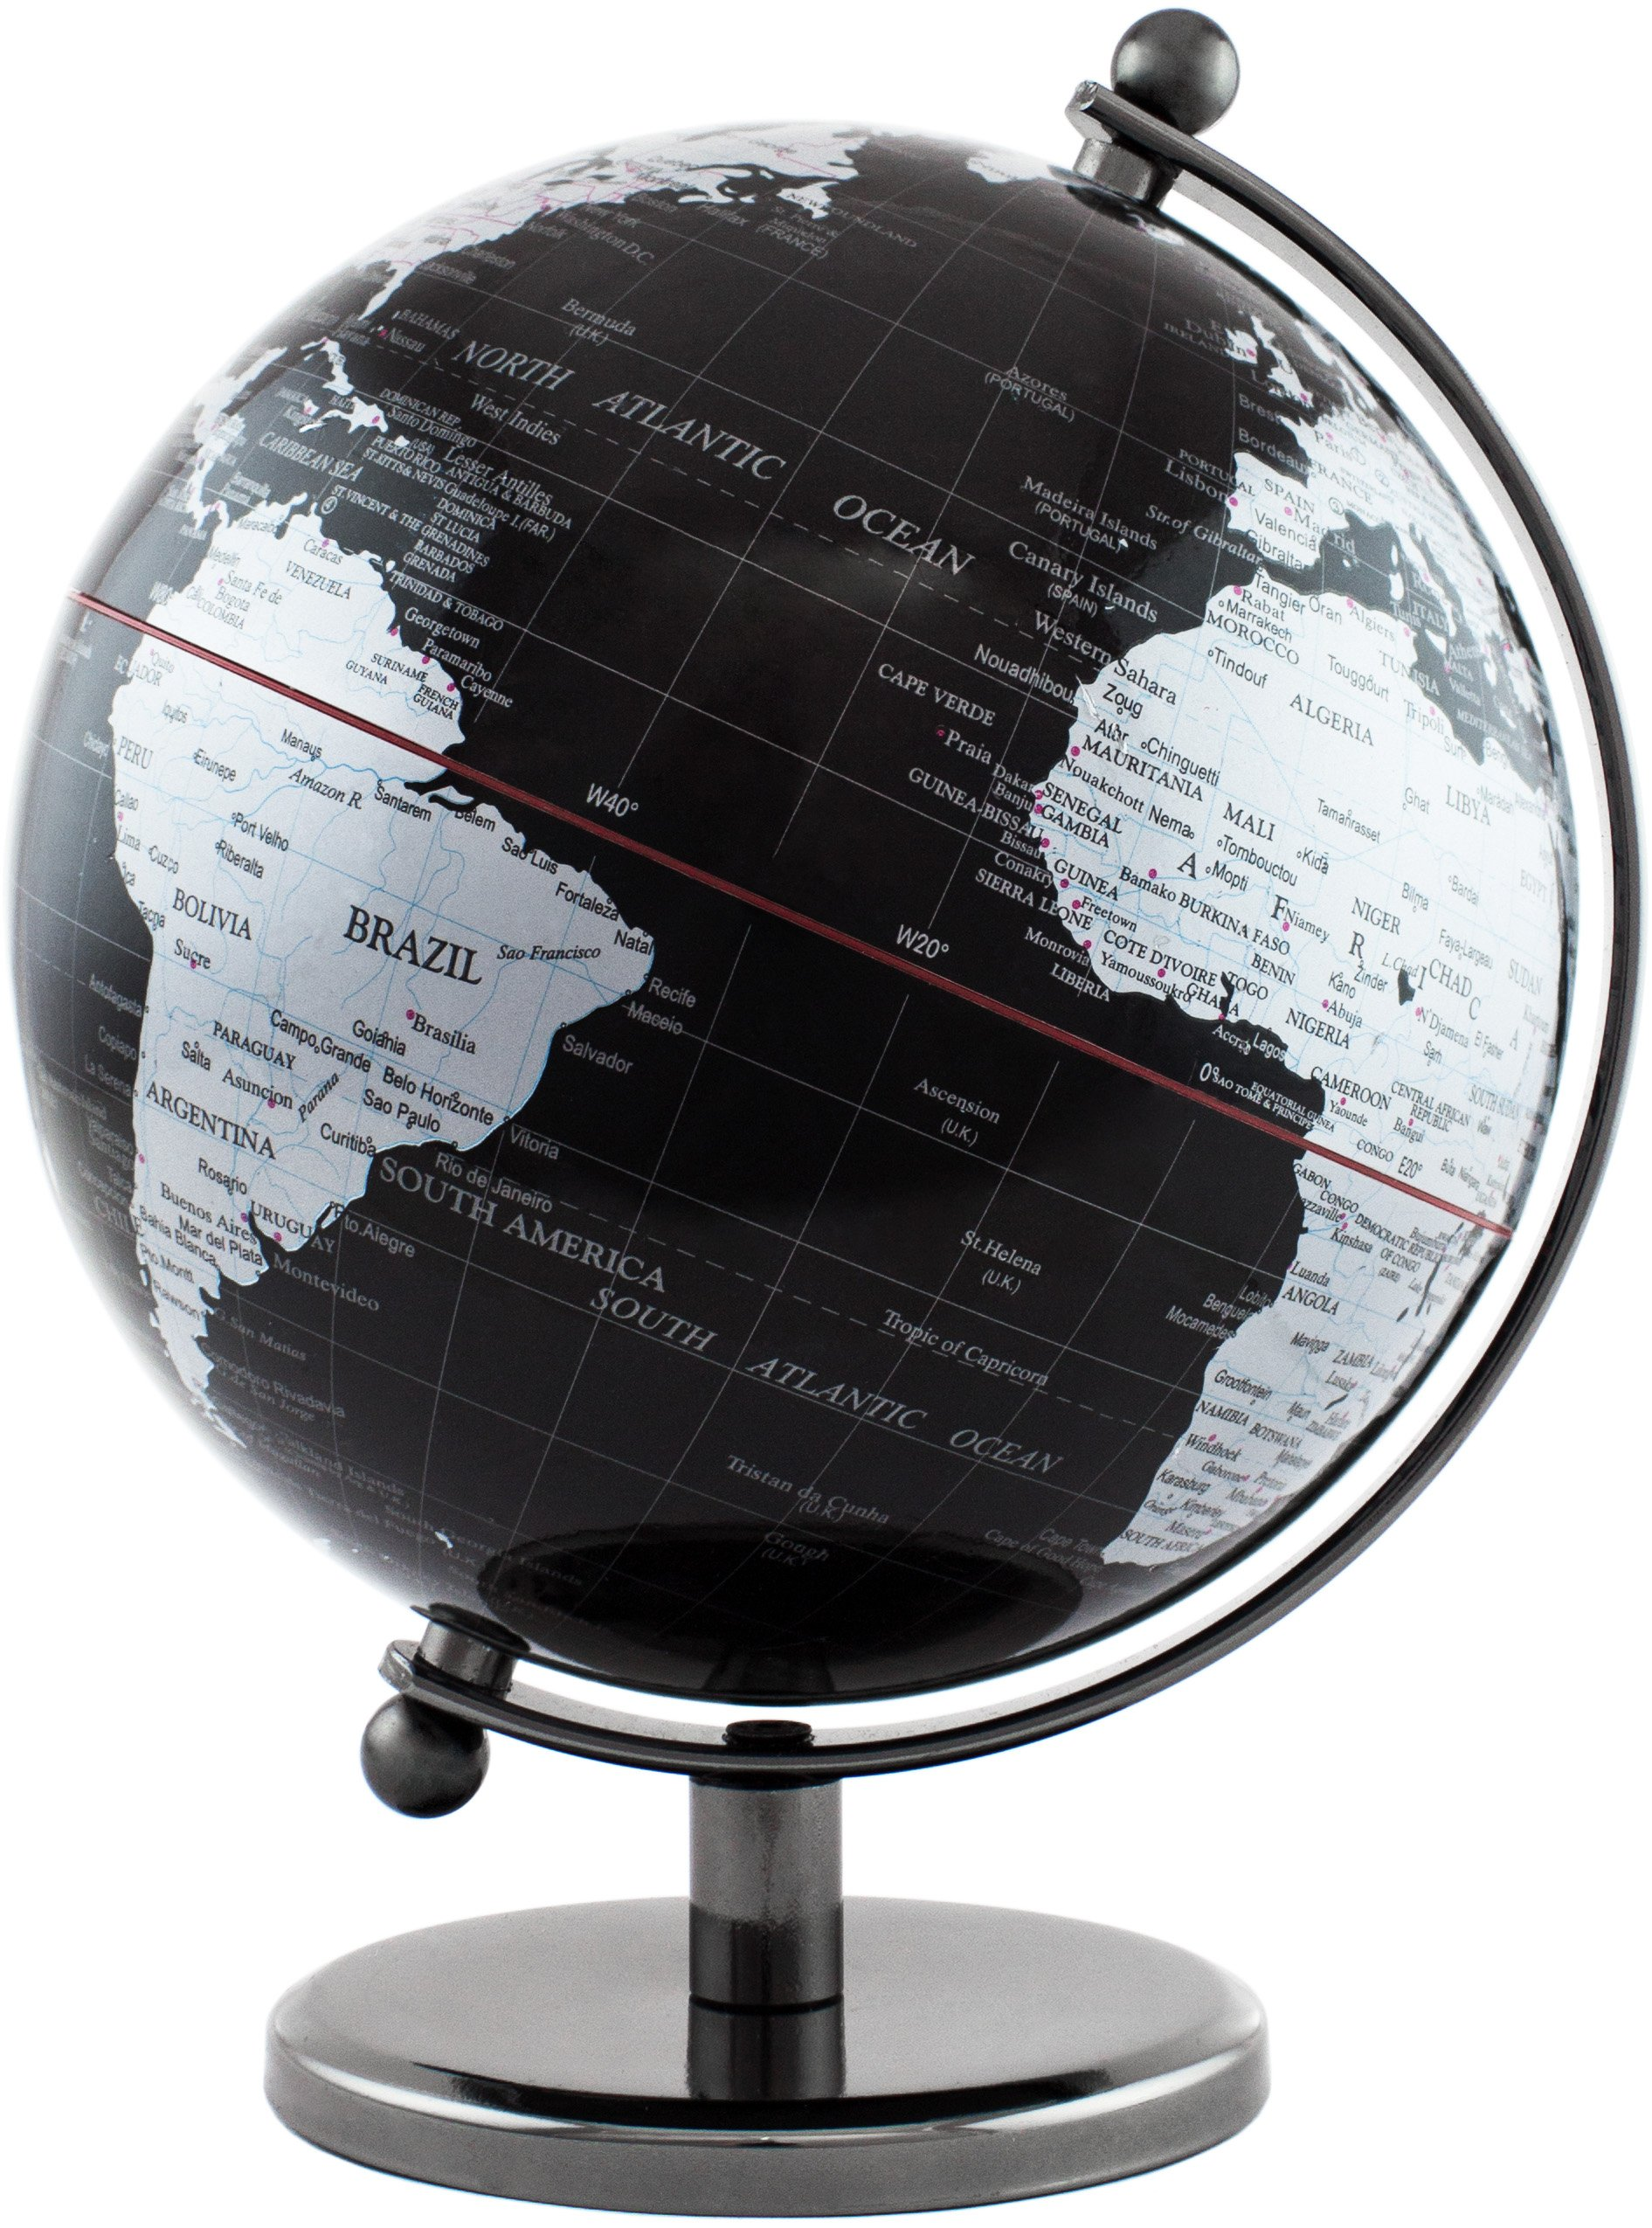 BRUBAKER Office Decoration Interactive Political World Globe - 7.5 inches tall - Black